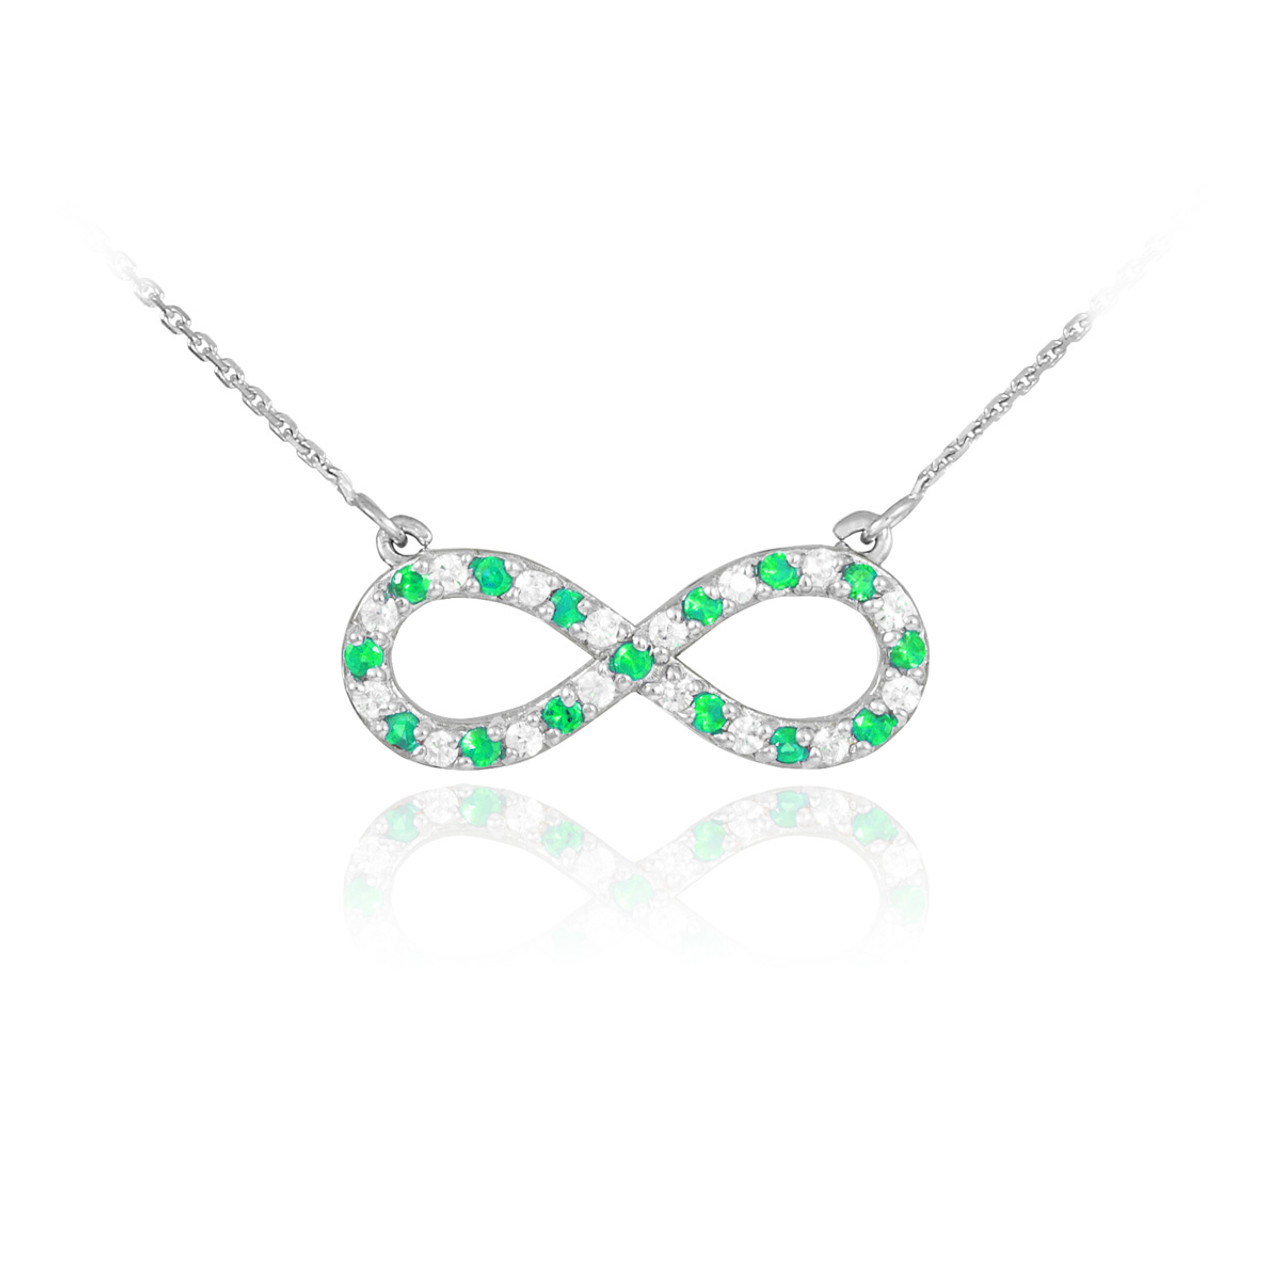 902fecc4f4 Sterling Silver Clear & Green CZ Infinity Necklace